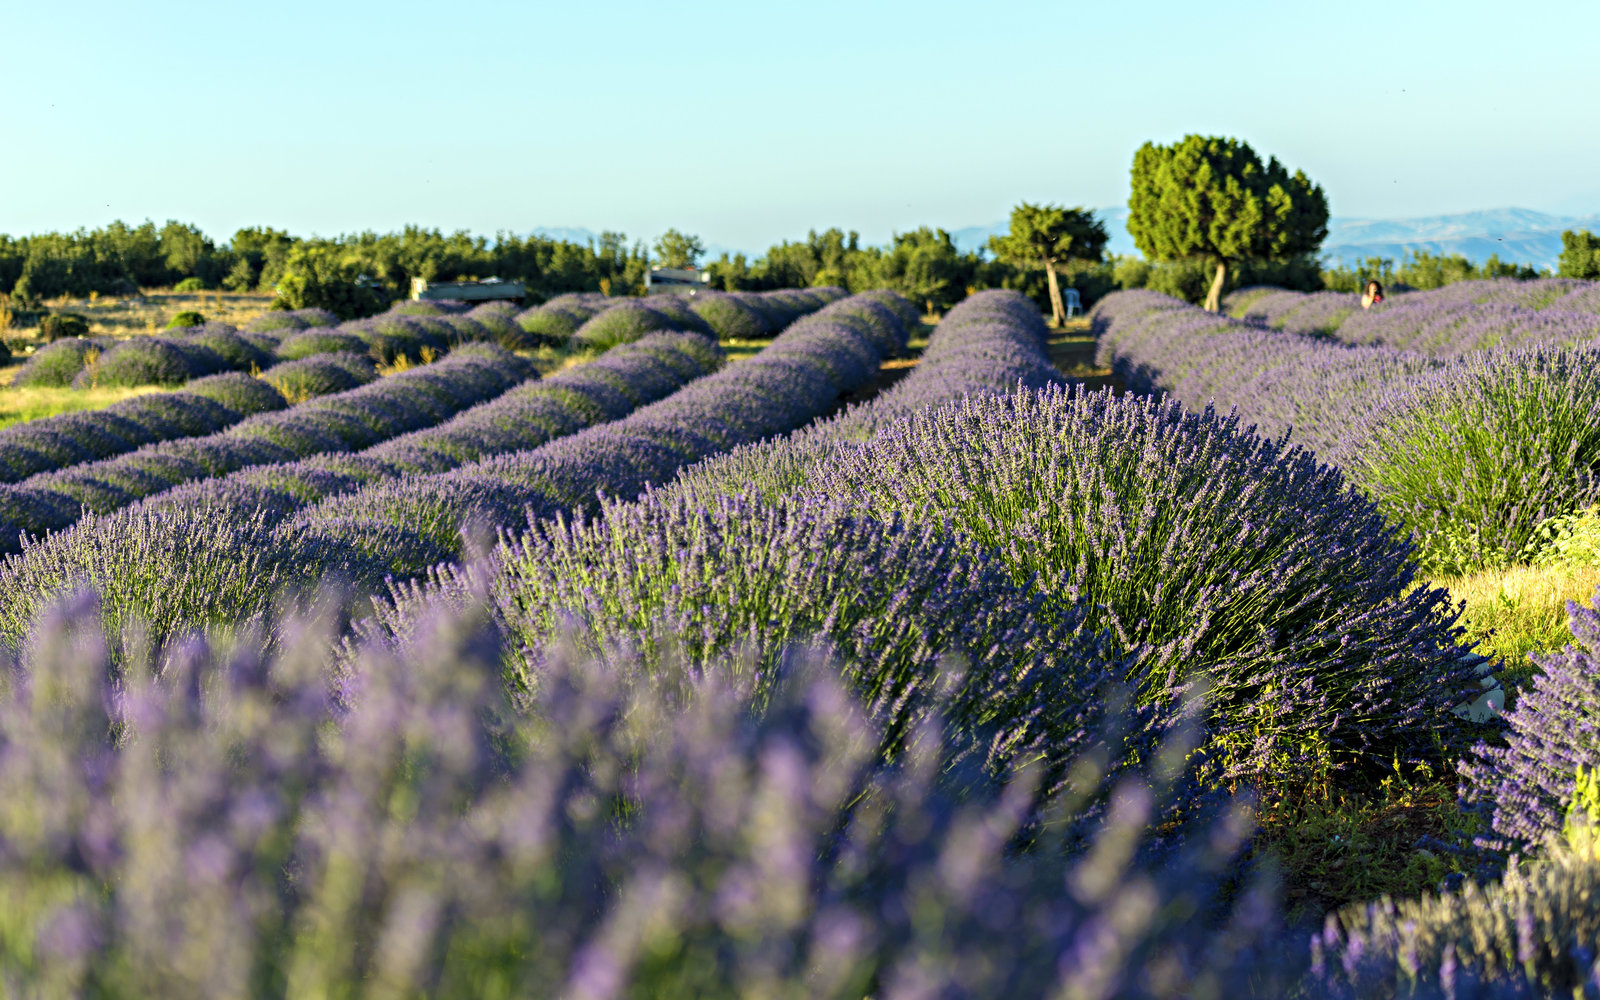 There's a Lavender-filled Village in Turkey, and It's Just as Magical as You're Imagining